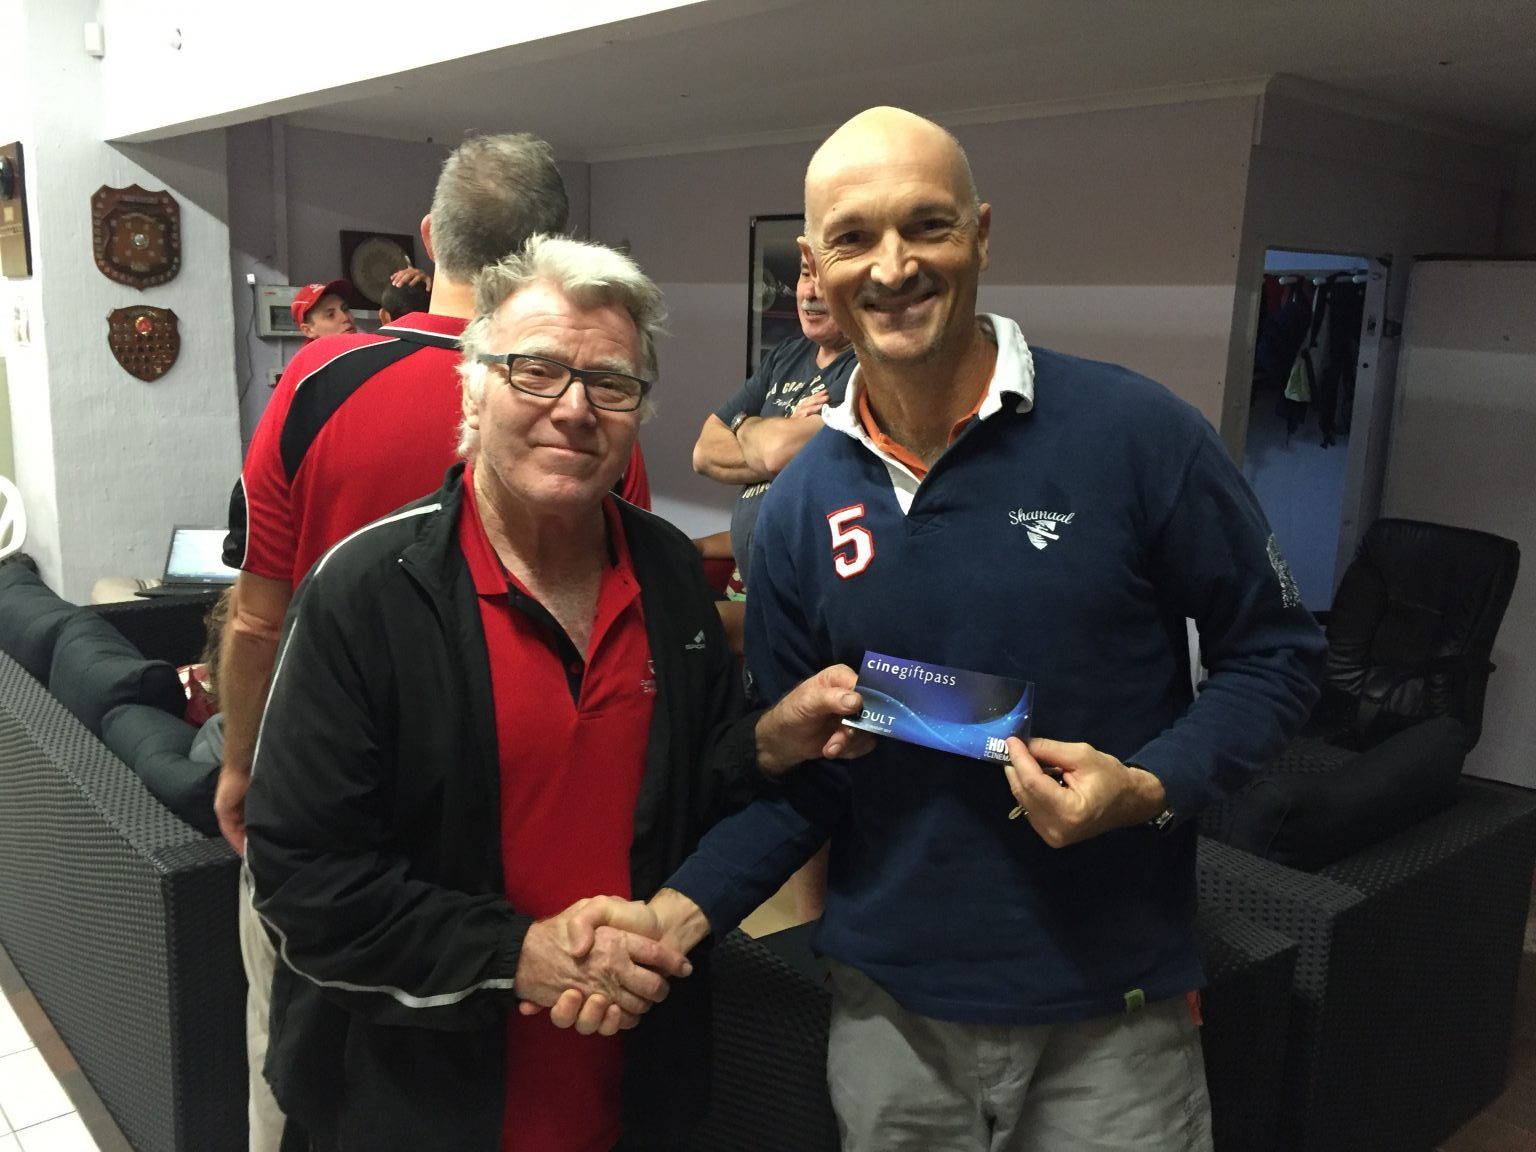 Tues 21st March 2017 : Tonights photo shows club member David Gardiner presenting Carlo with a movie voucher.